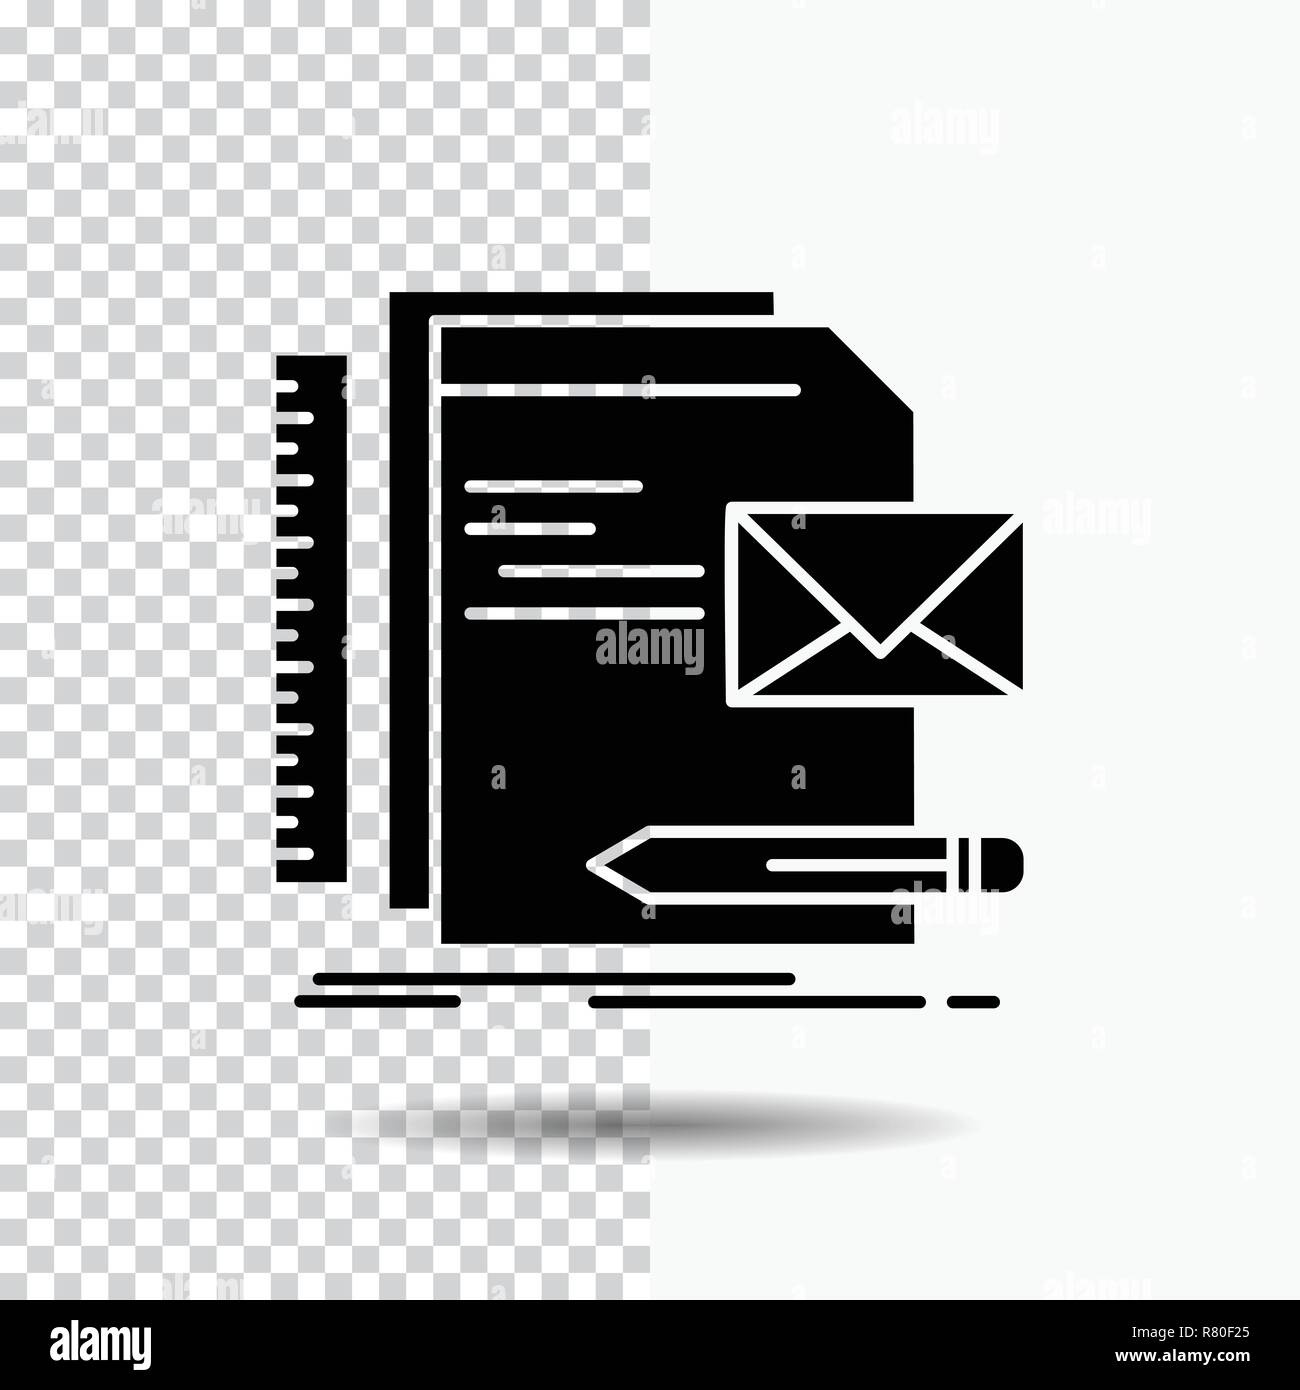 brand company identity letter presentation glyph icon on transparent background black icon stock vector image art alamy https www alamy com brand company identity letter presentation glyph icon on transparent background black icon image228663853 html